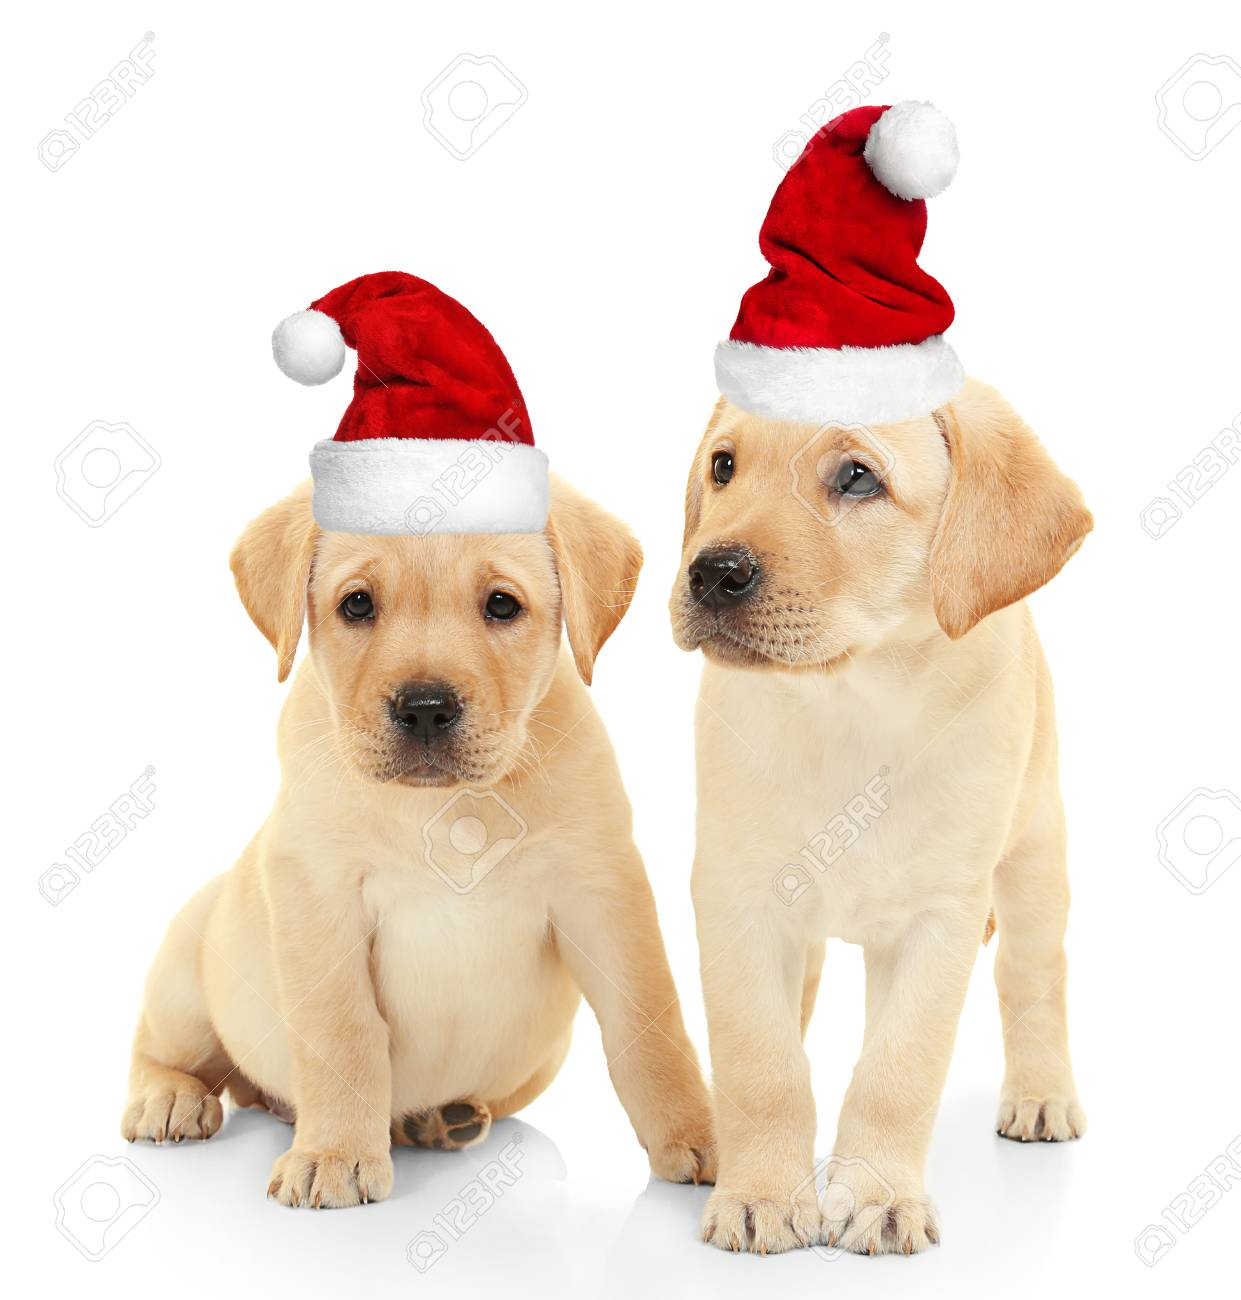 Cute Christmas Puppies.Cute Puppies In Santa Hats On White Background Christmas And